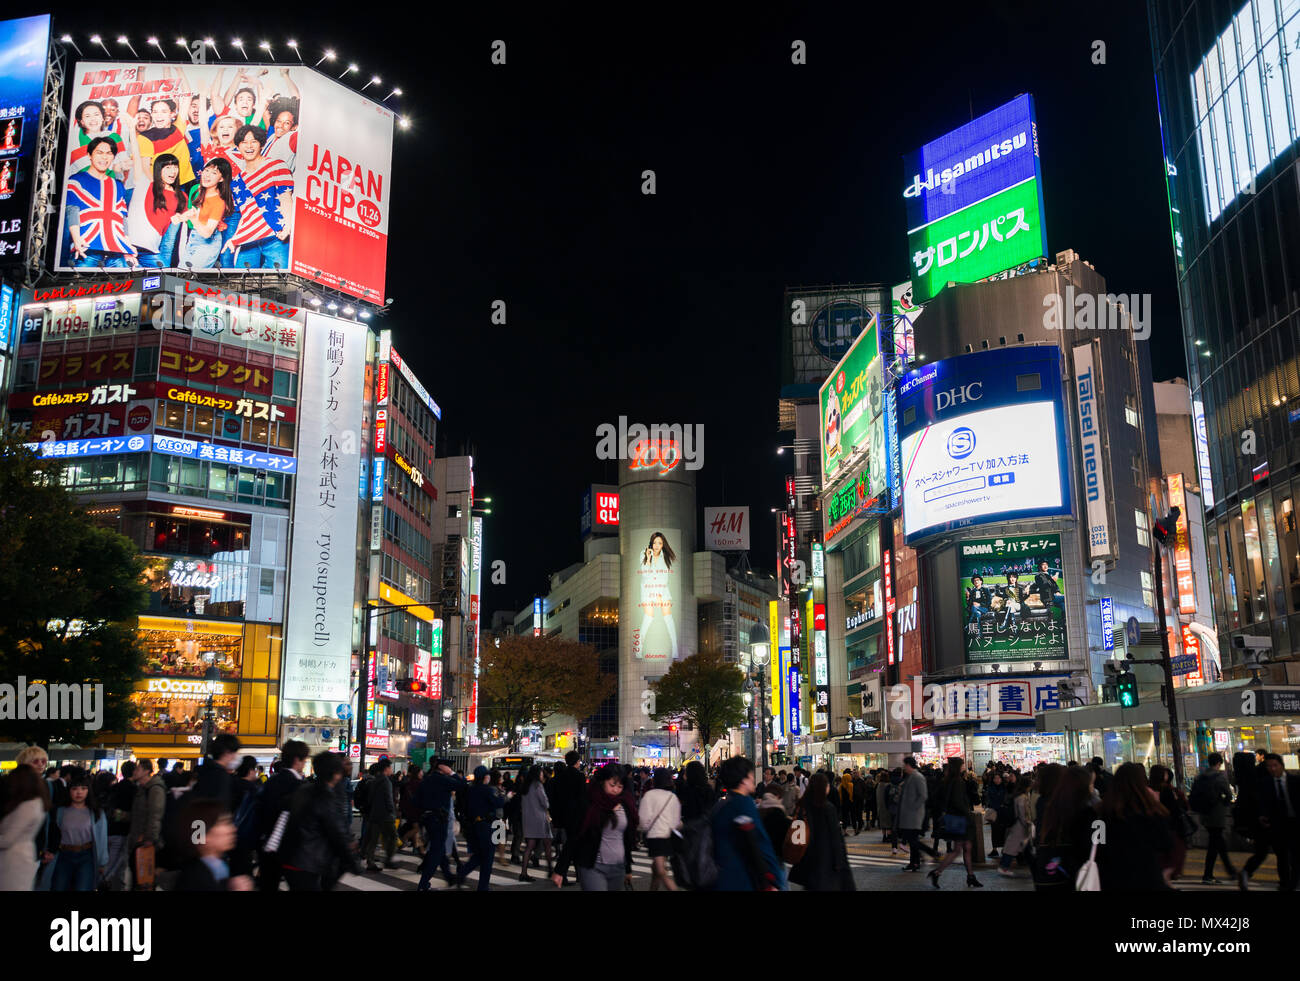 Tokyo by night. The famous Shibuya Crossing, the busiest intersection in the world - Stock Image